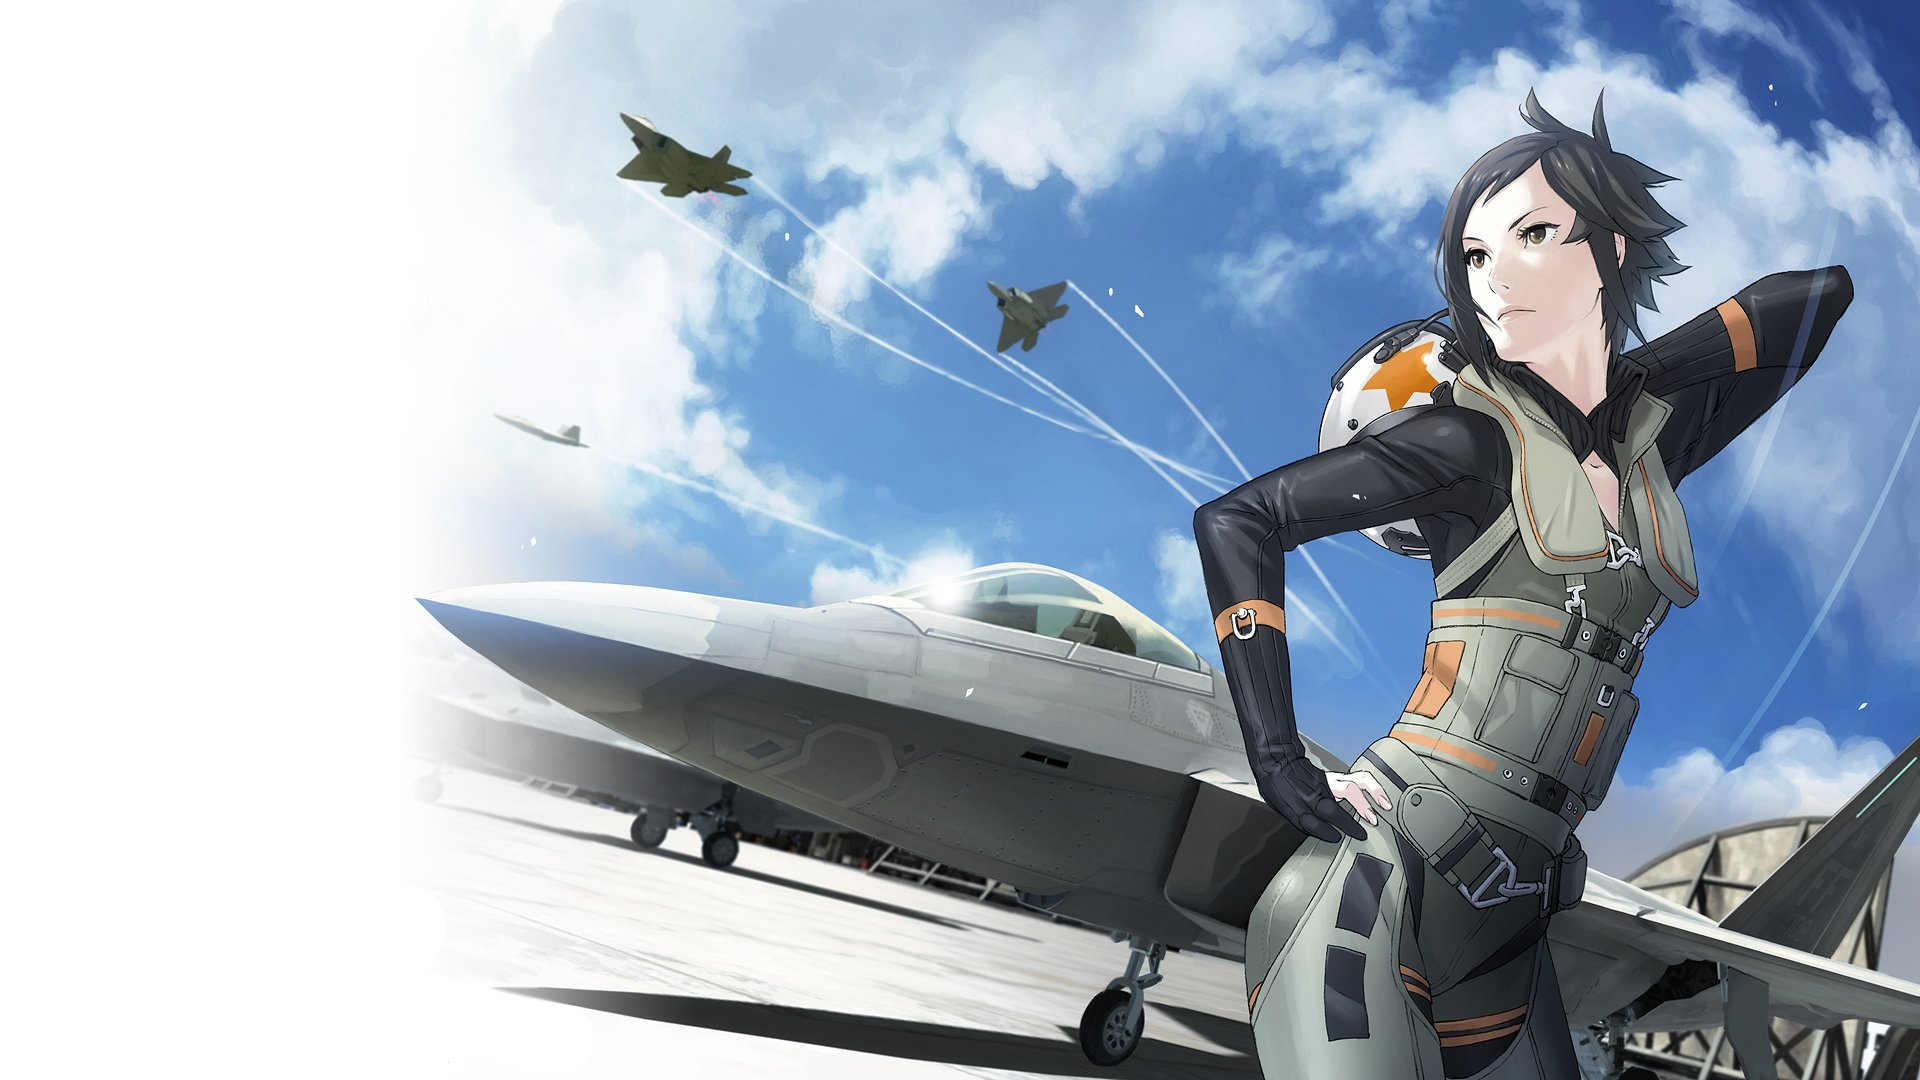 Ace Combat Full HD Wallpaper And Background Image